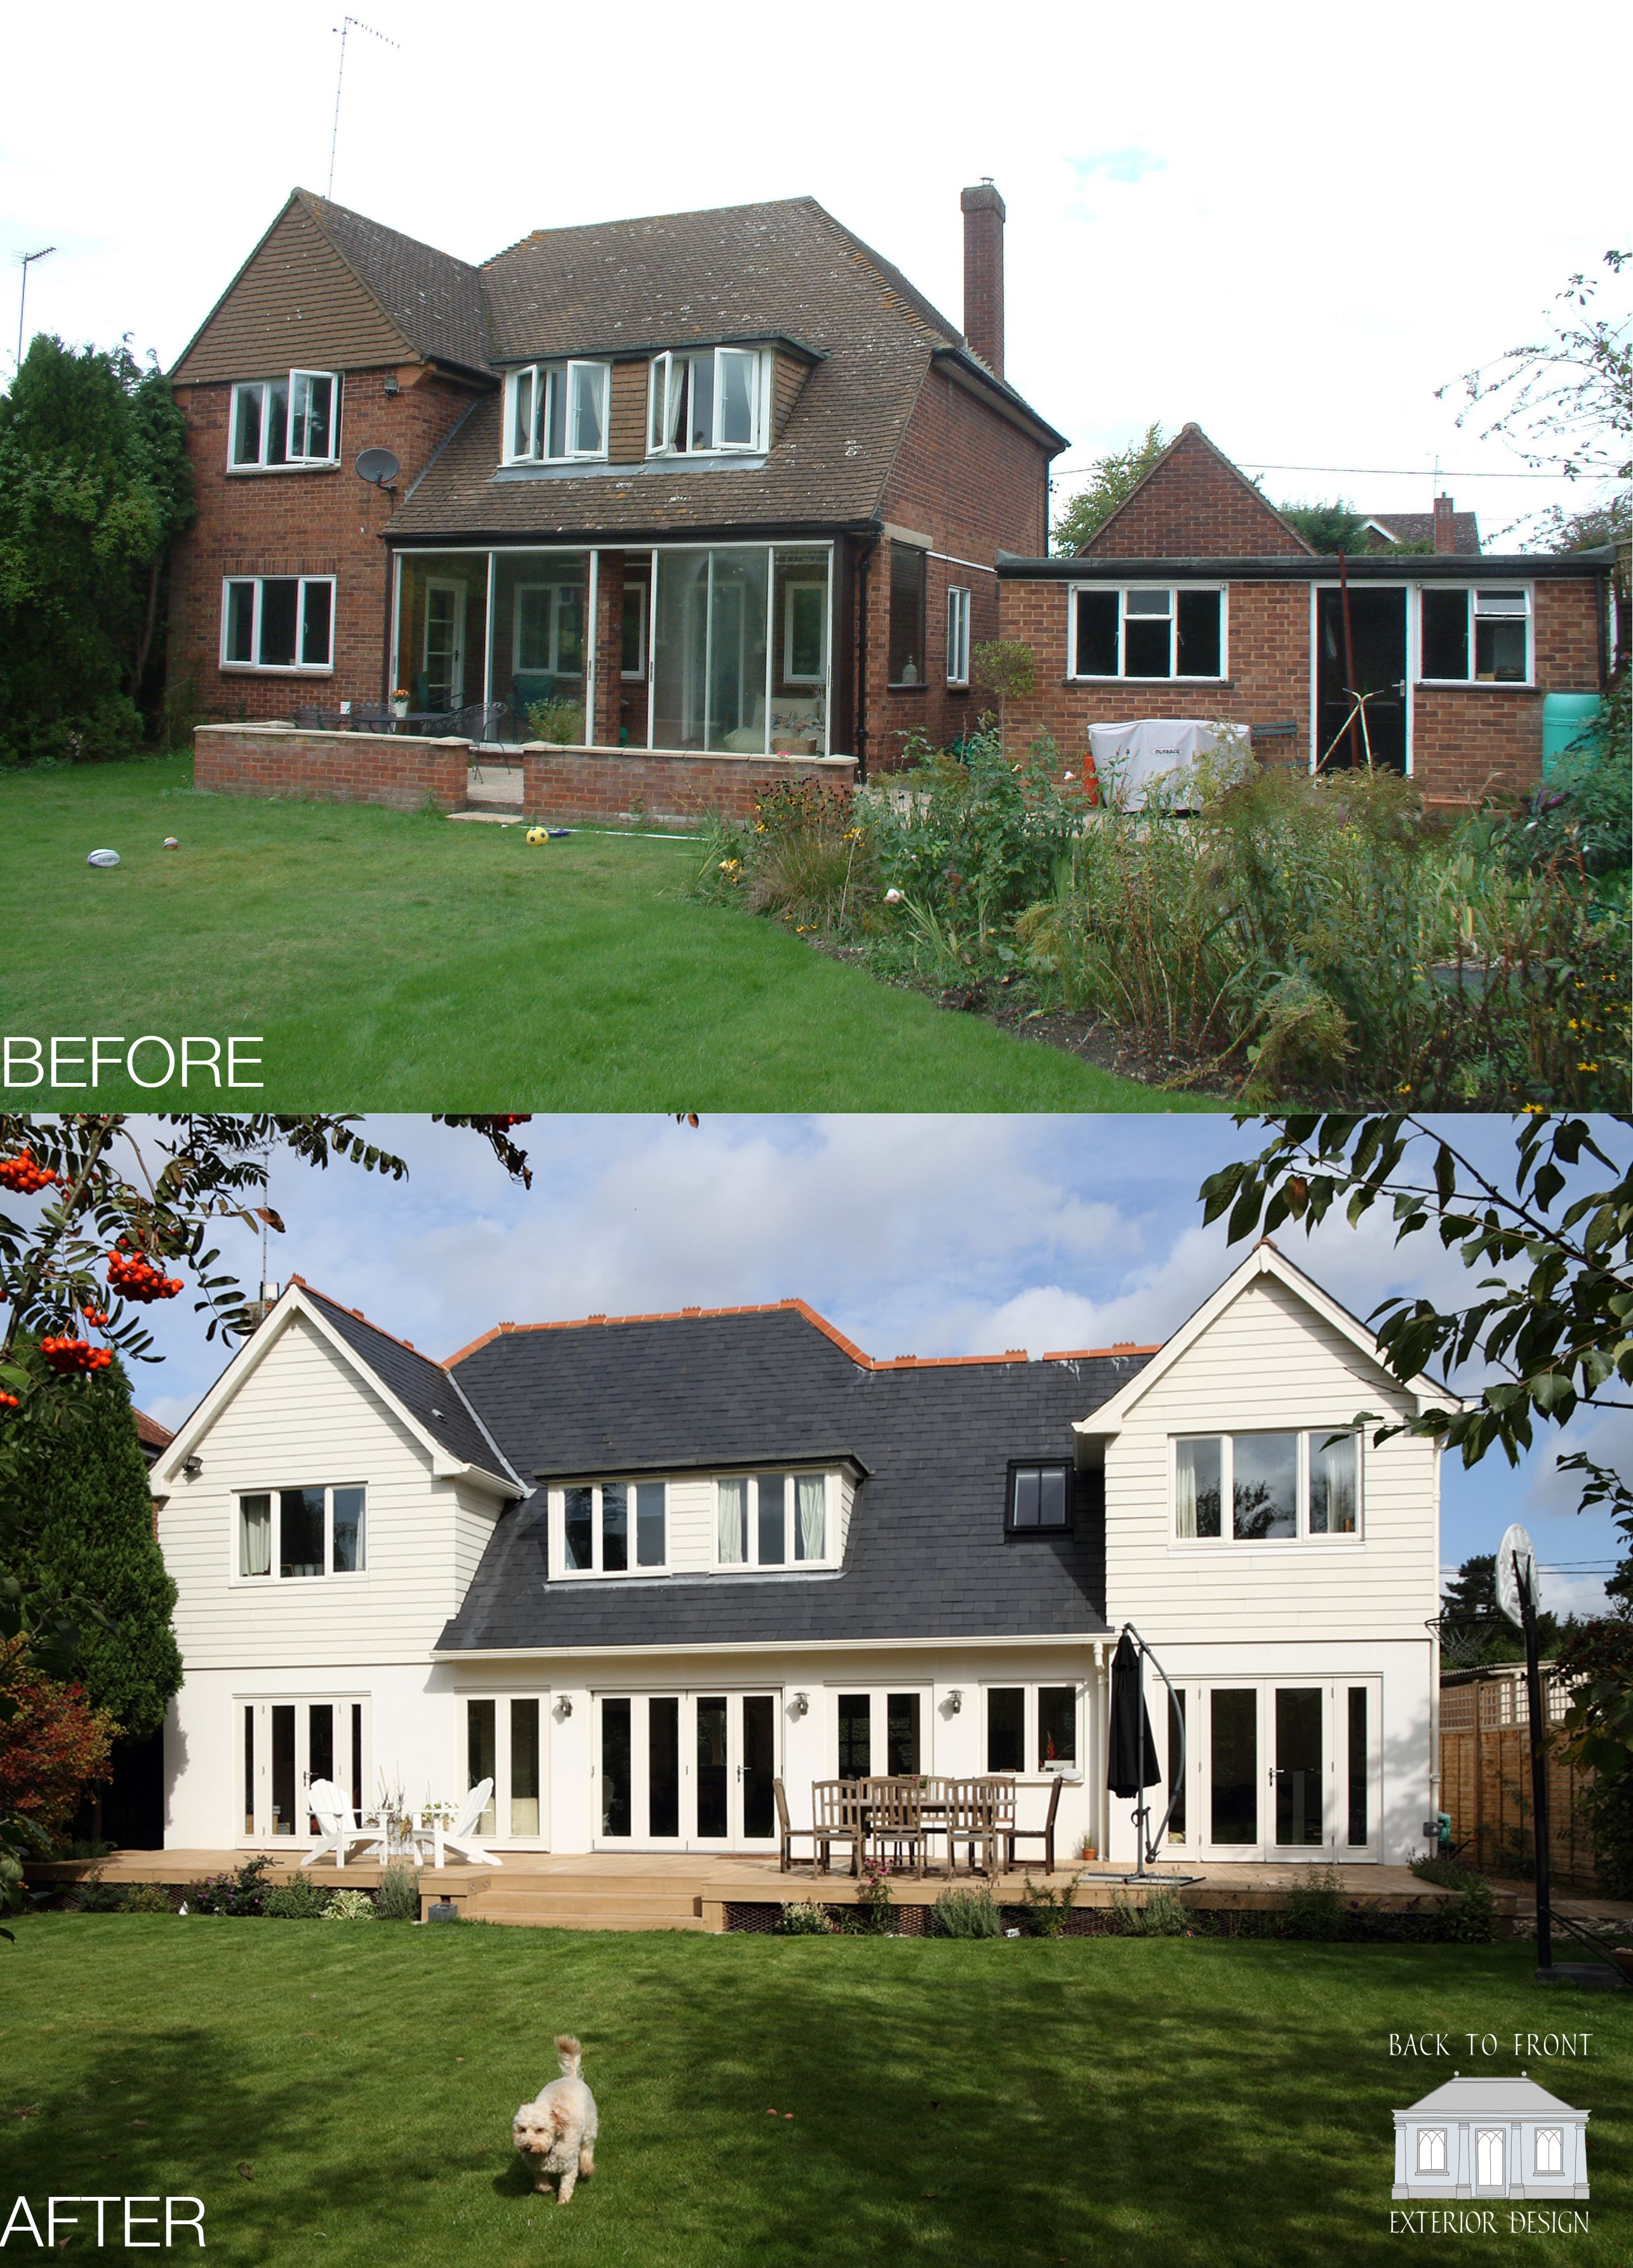 New England Renovation In Maidenhead, Berkshire By Back To